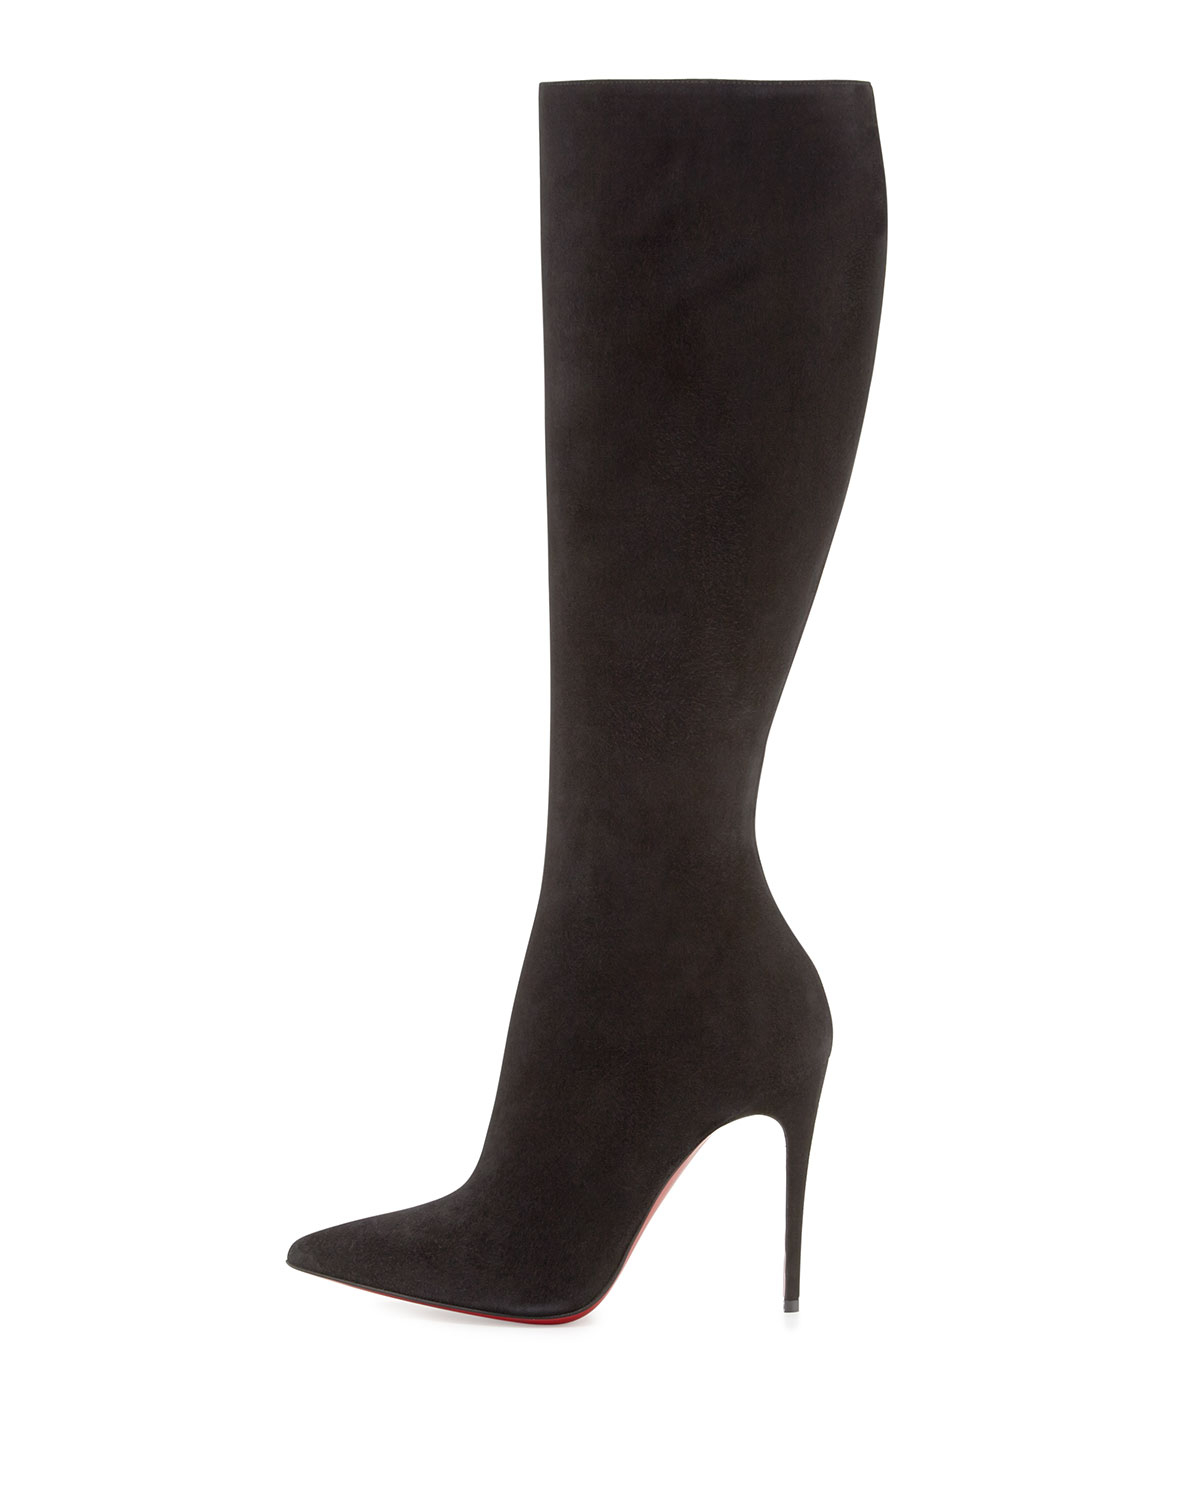 christian louboutin pointed-toe boots Black suede | The Little ...